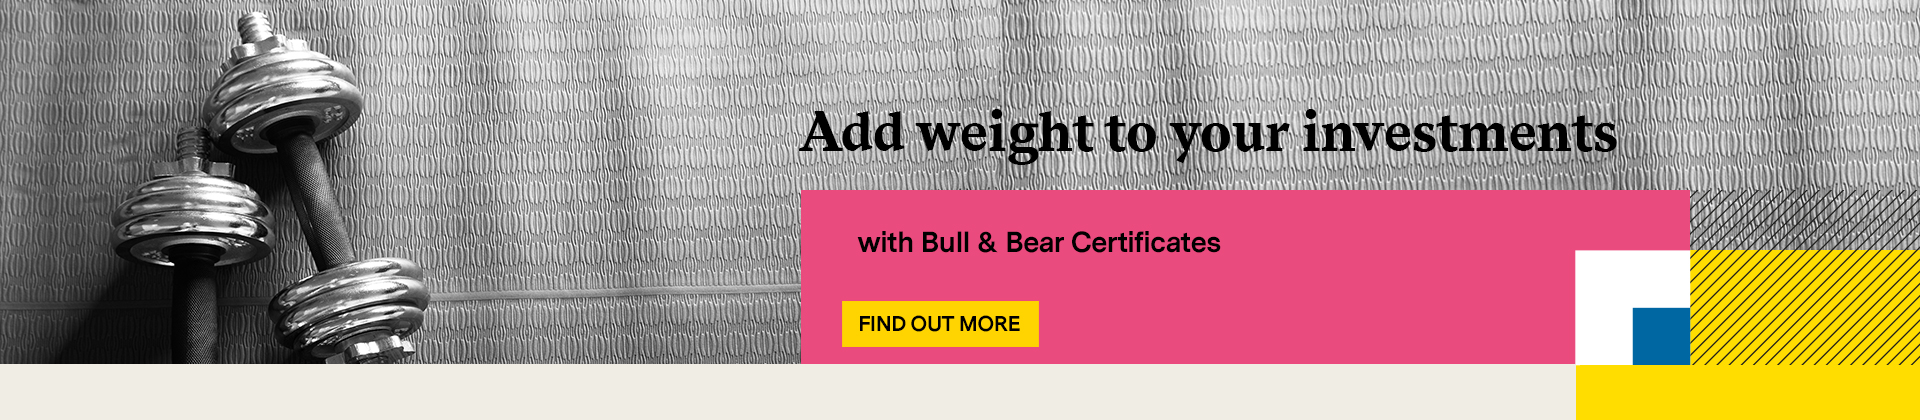 Bull and Bear Certificates